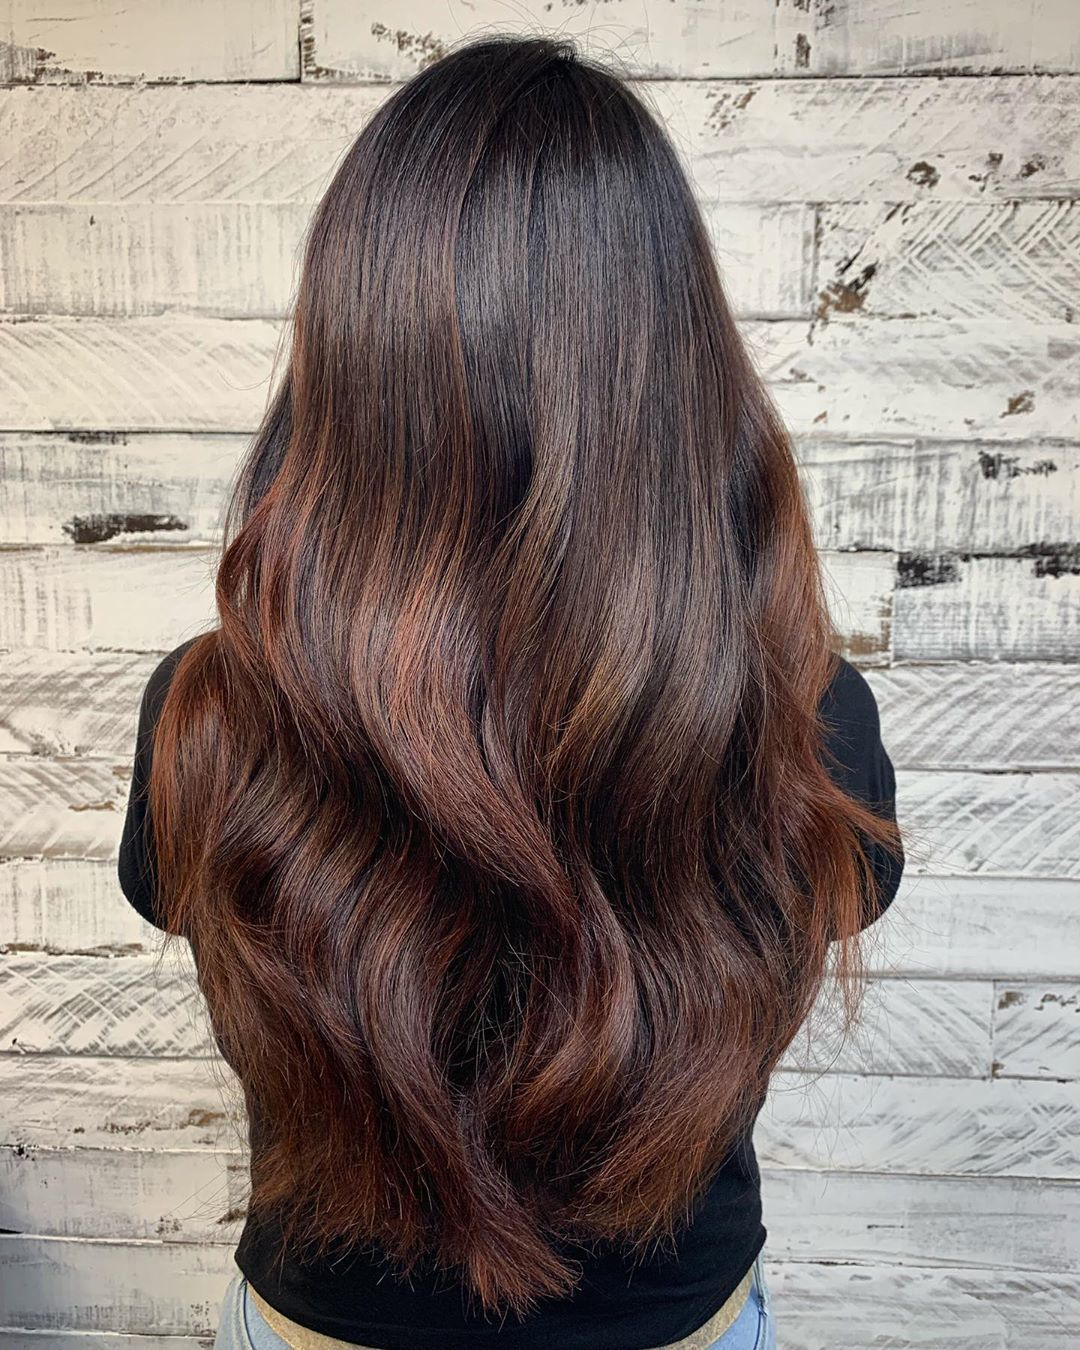 Woman with long chestnut brown hair with subtle highlights